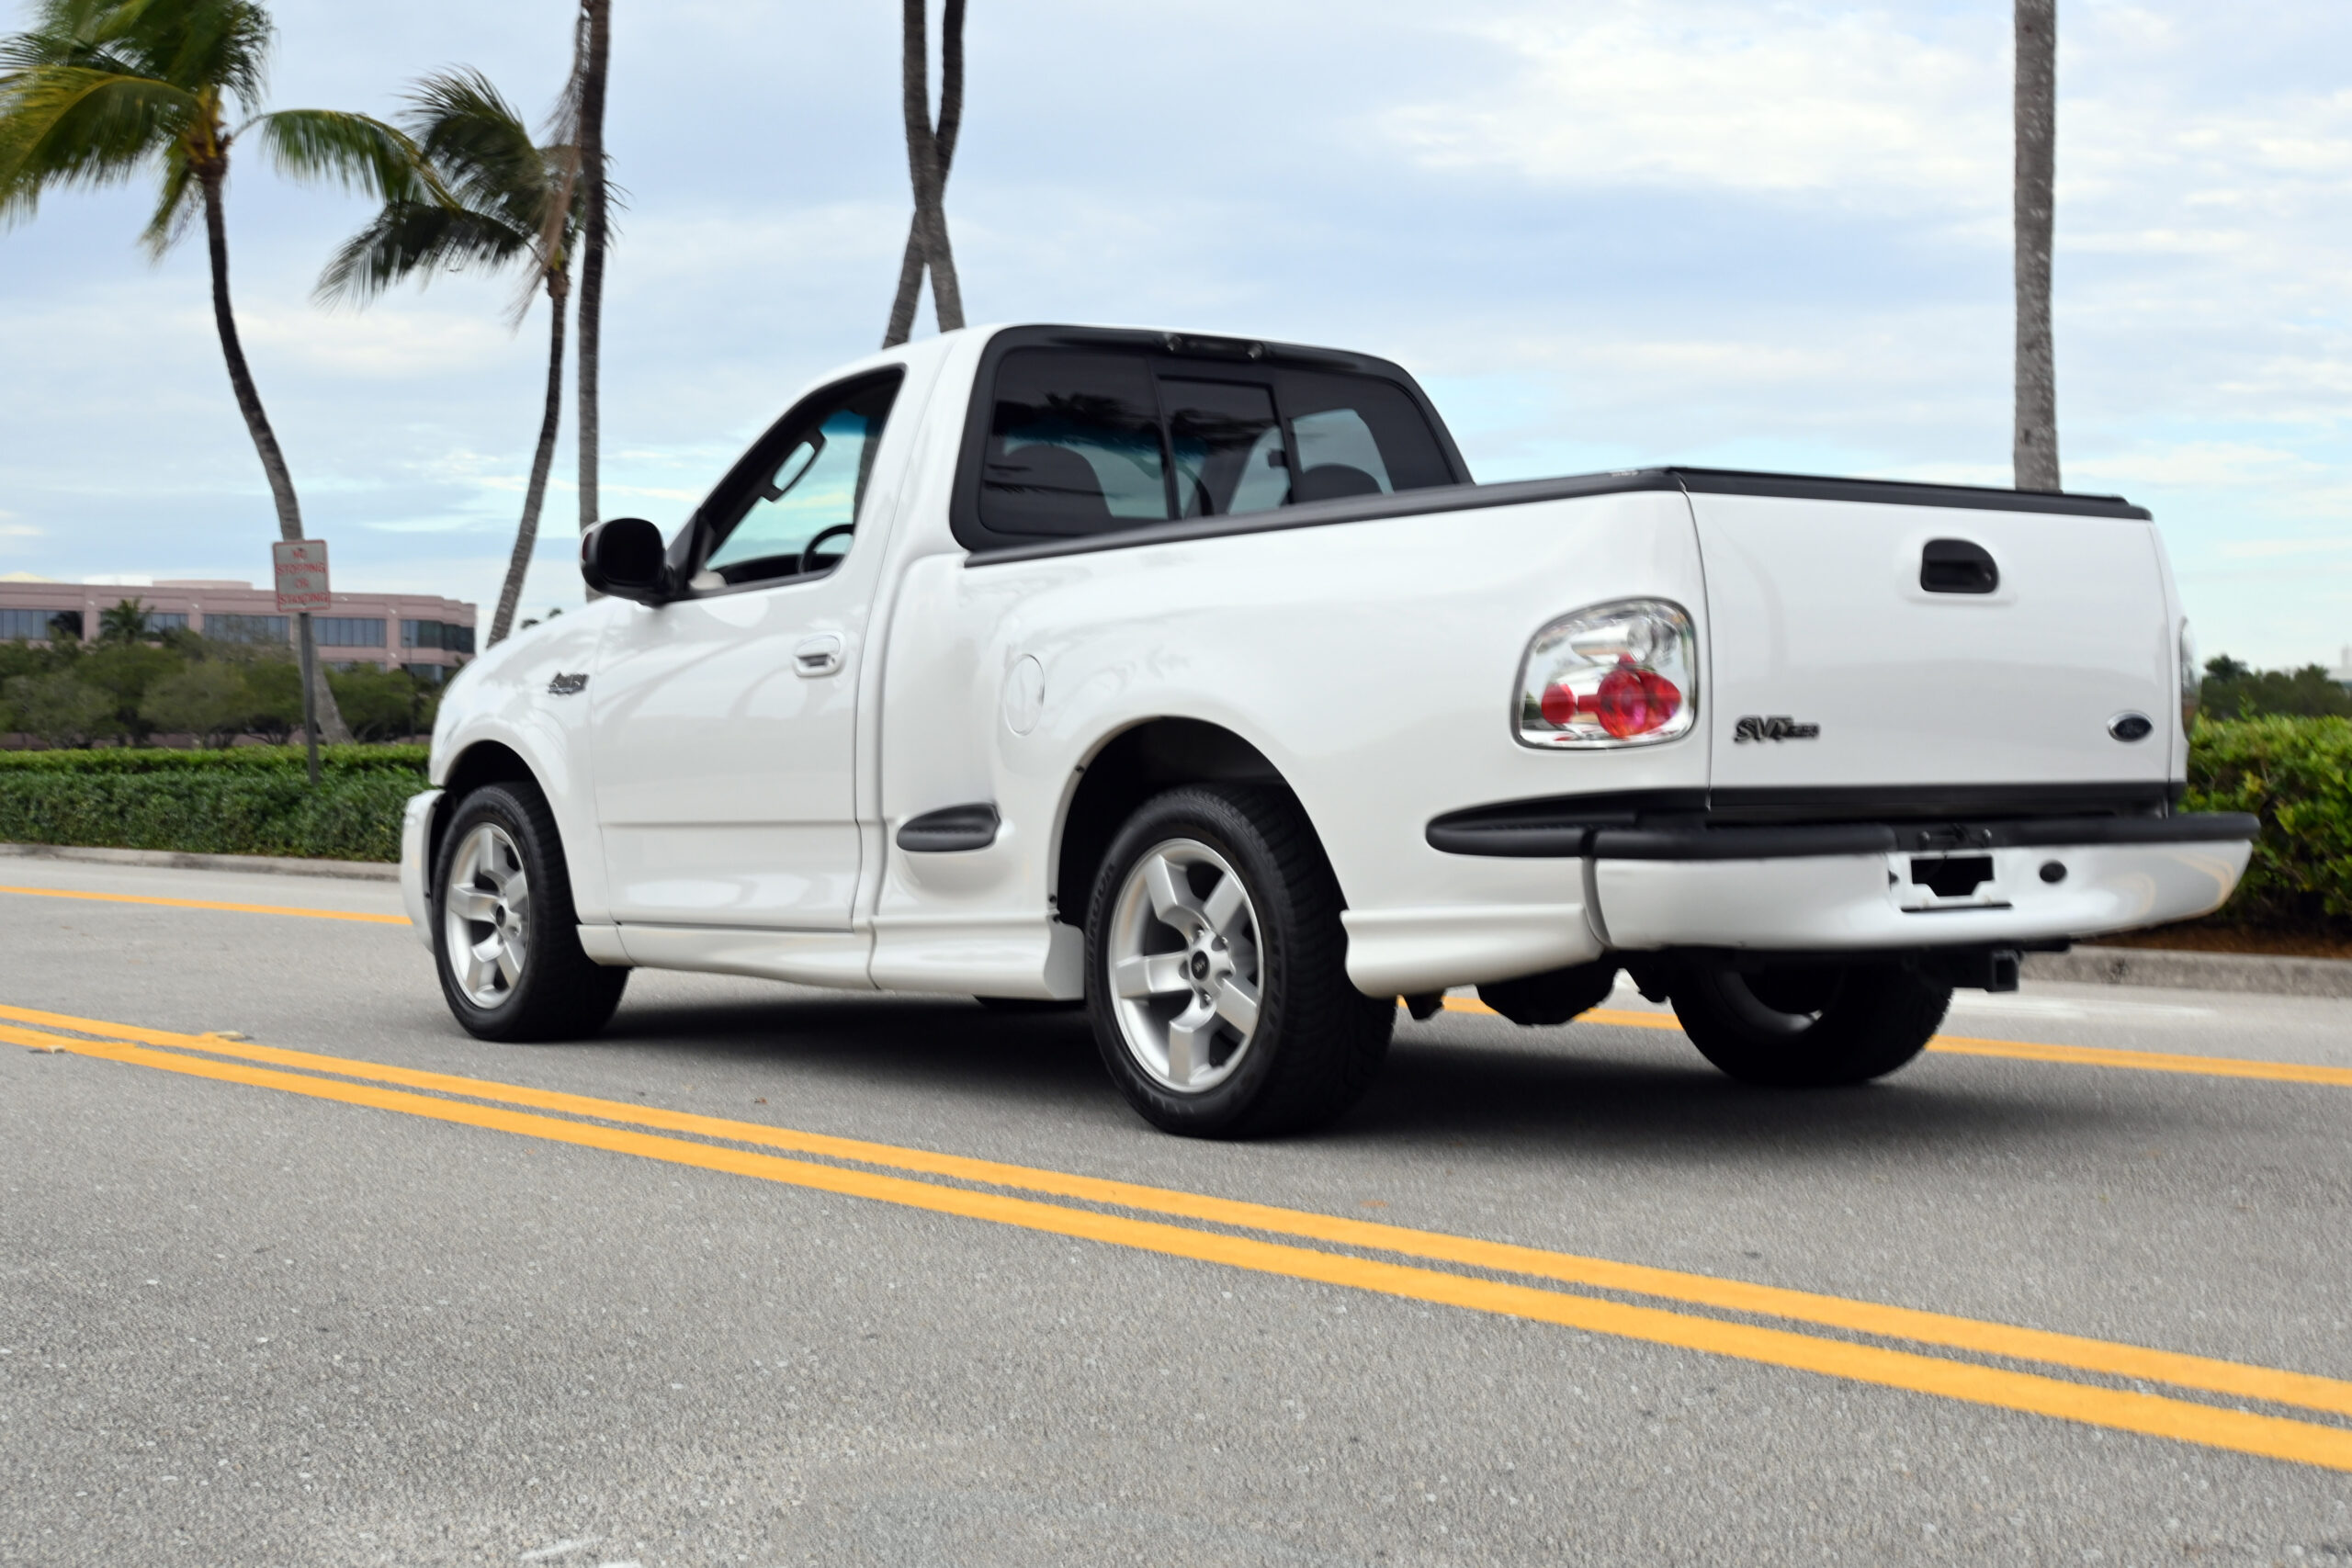 2002 Ford SVT Lightning, original paint, one owner for 18 years! Well serviced, original window sticker and SVT paperwork